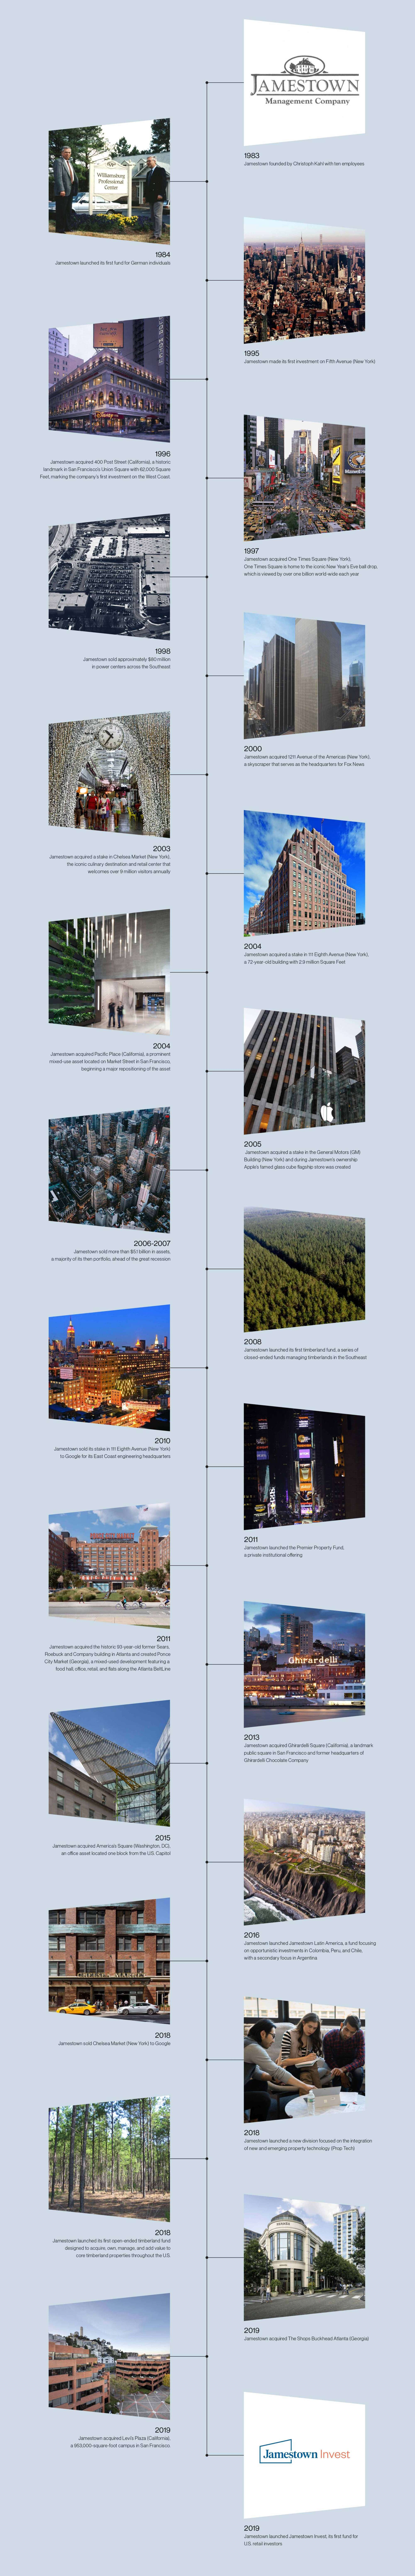 Timeline with property images and captions outlining various milestones of Jamestown from its founding in 1983 until now